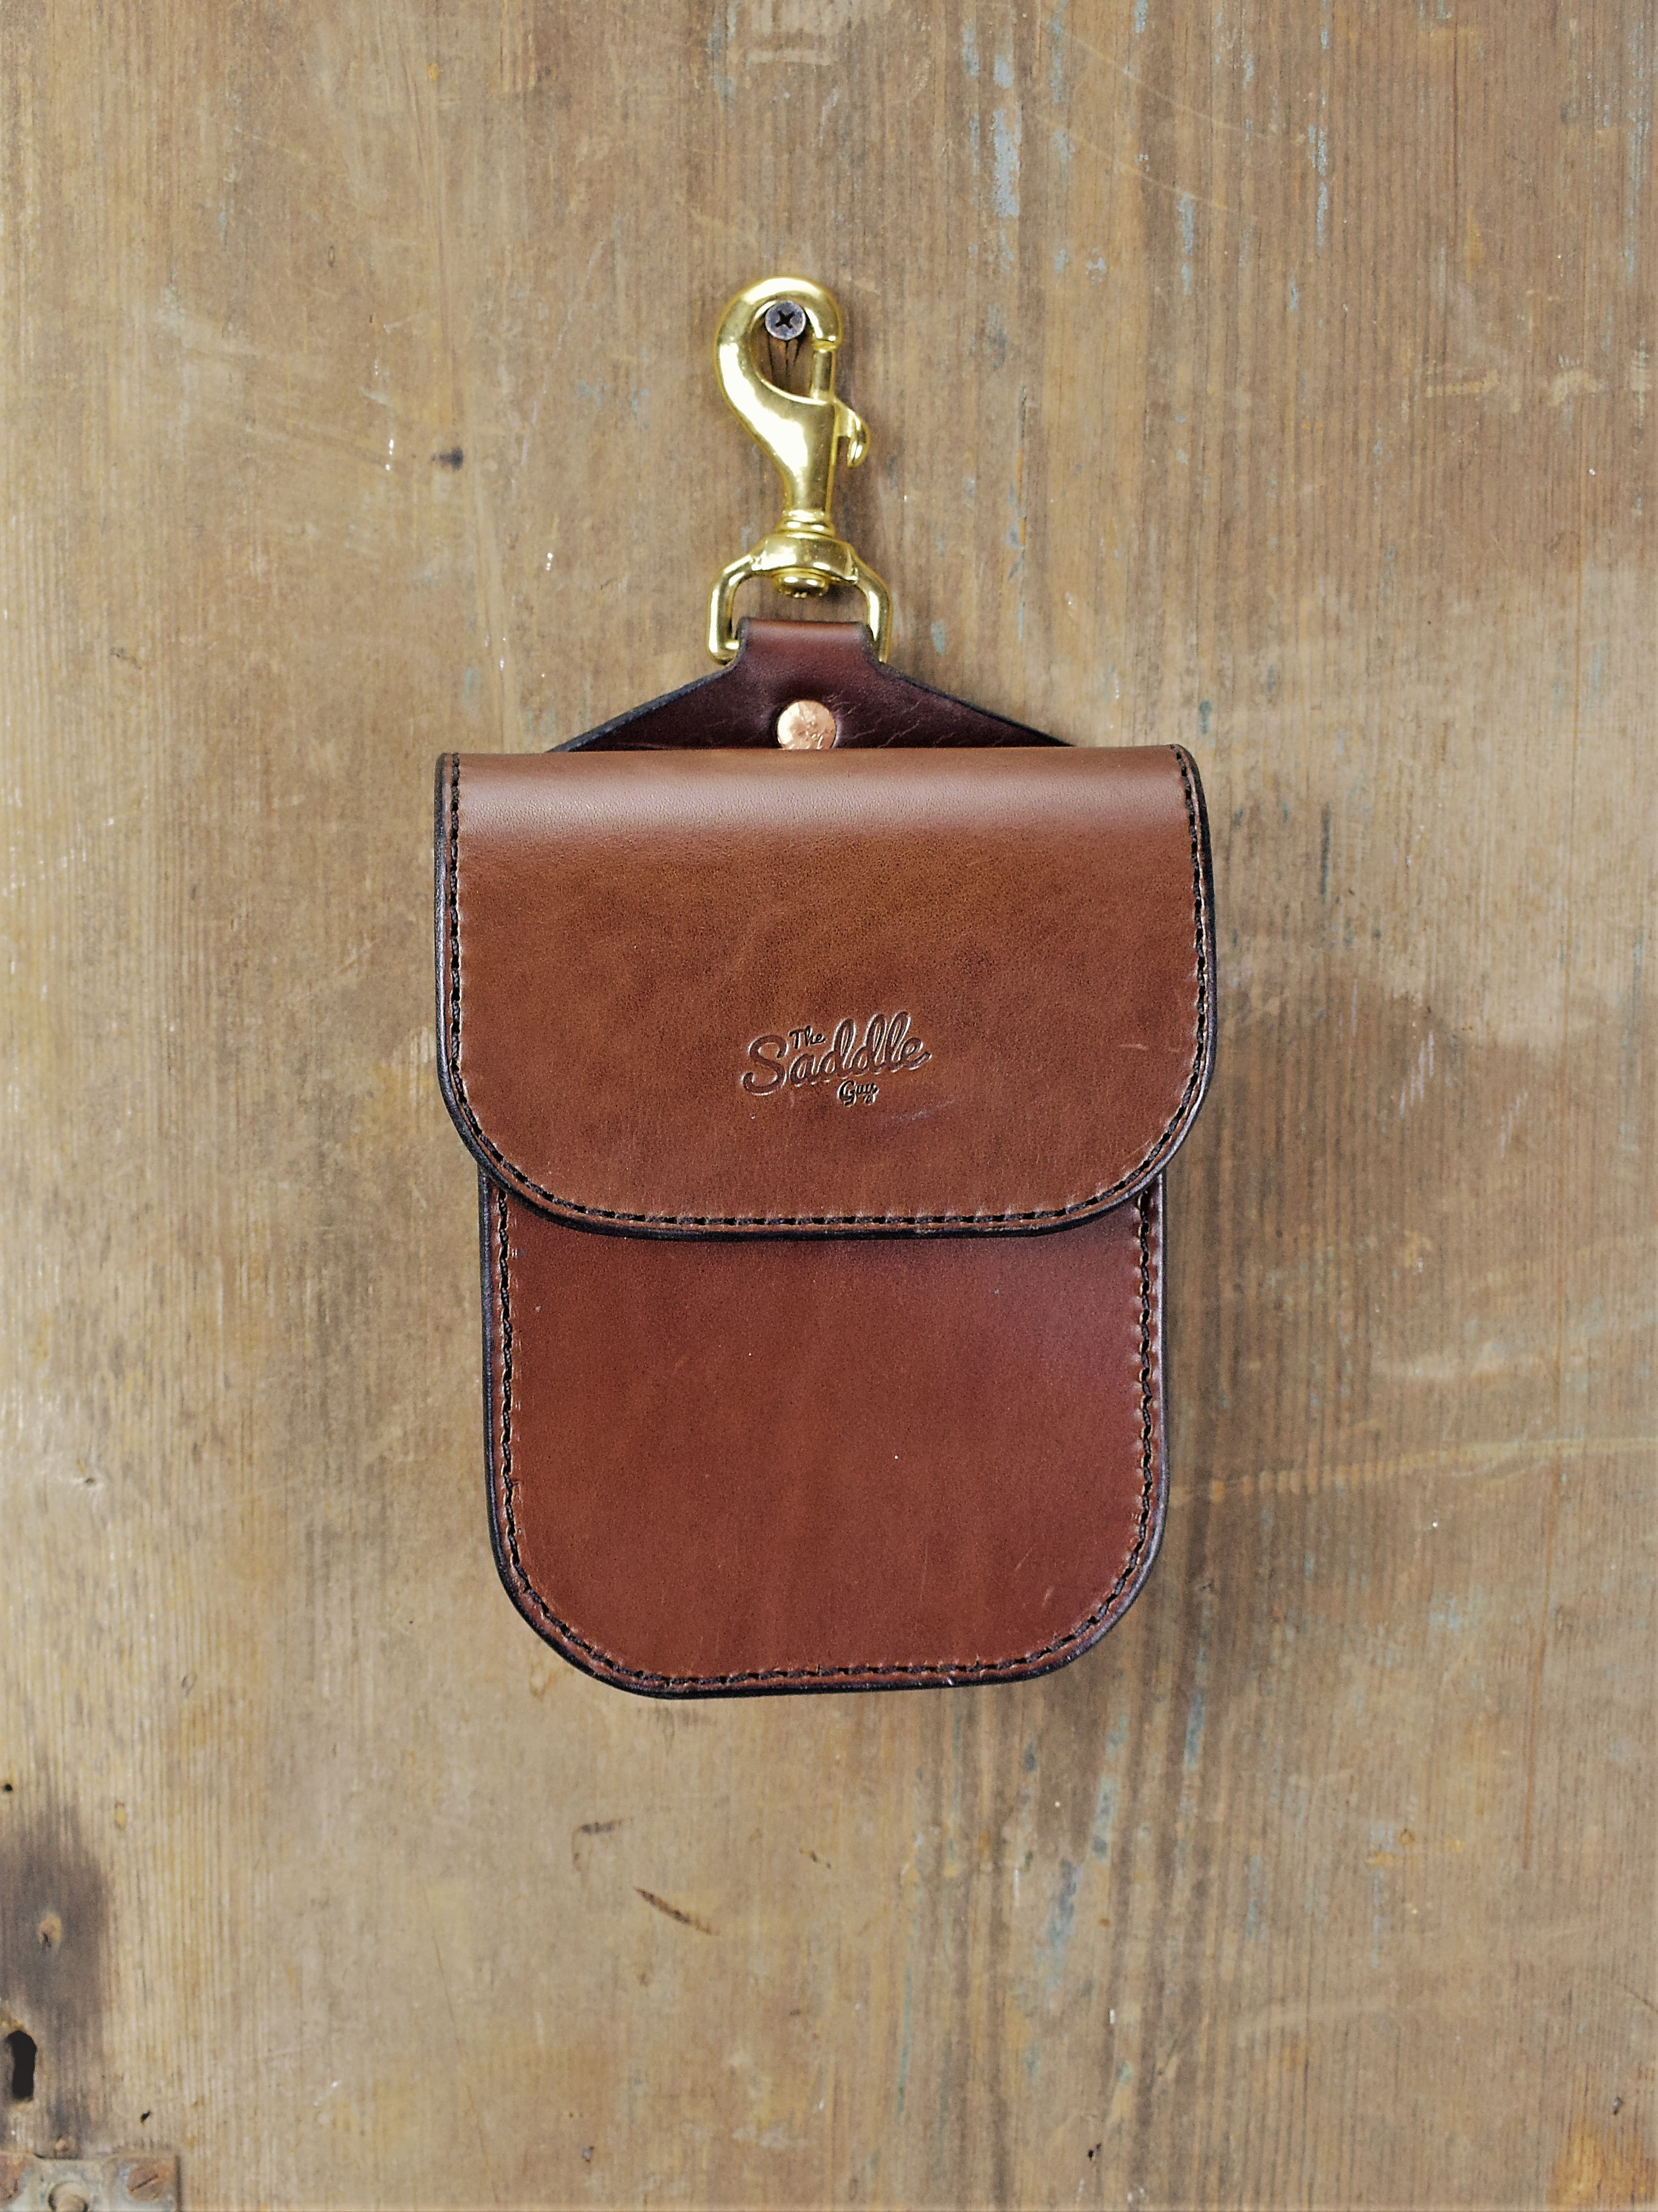 Improved Small Single Saddle Bag handcrafted by The Saddle Guy